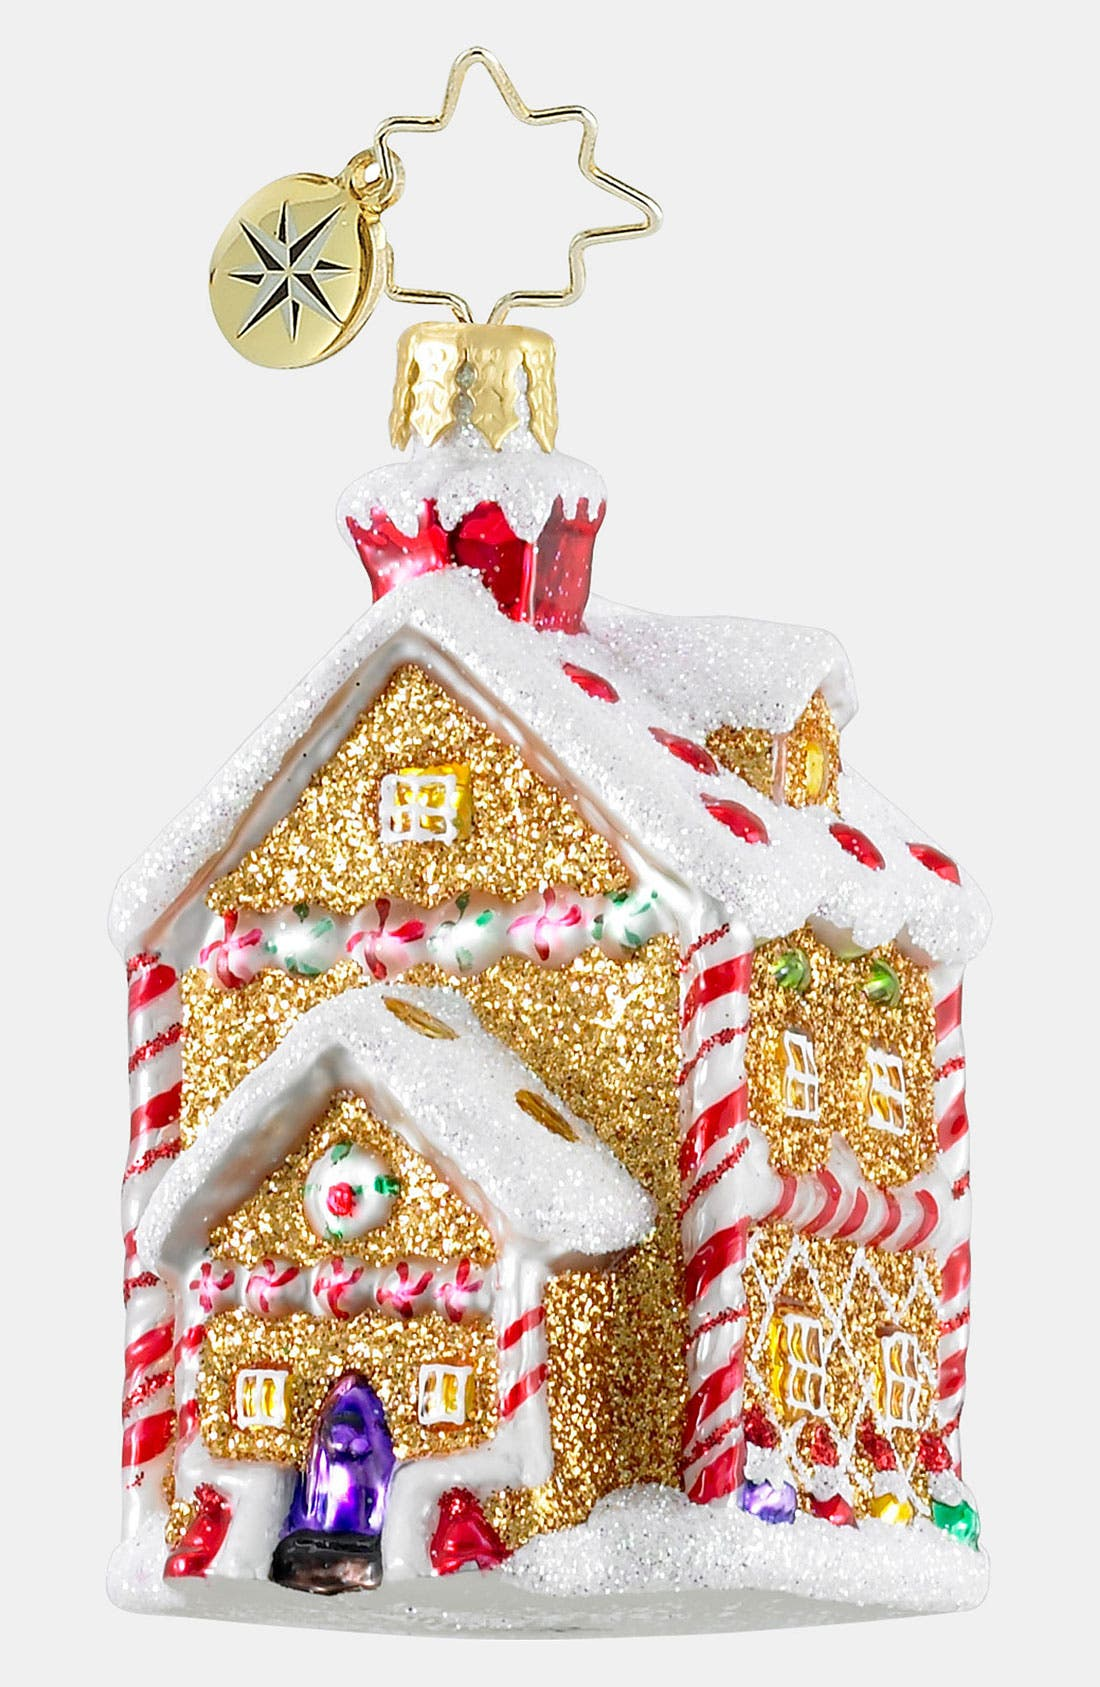 Main Image - Christopher Radko 'House of Sweets' Ornament